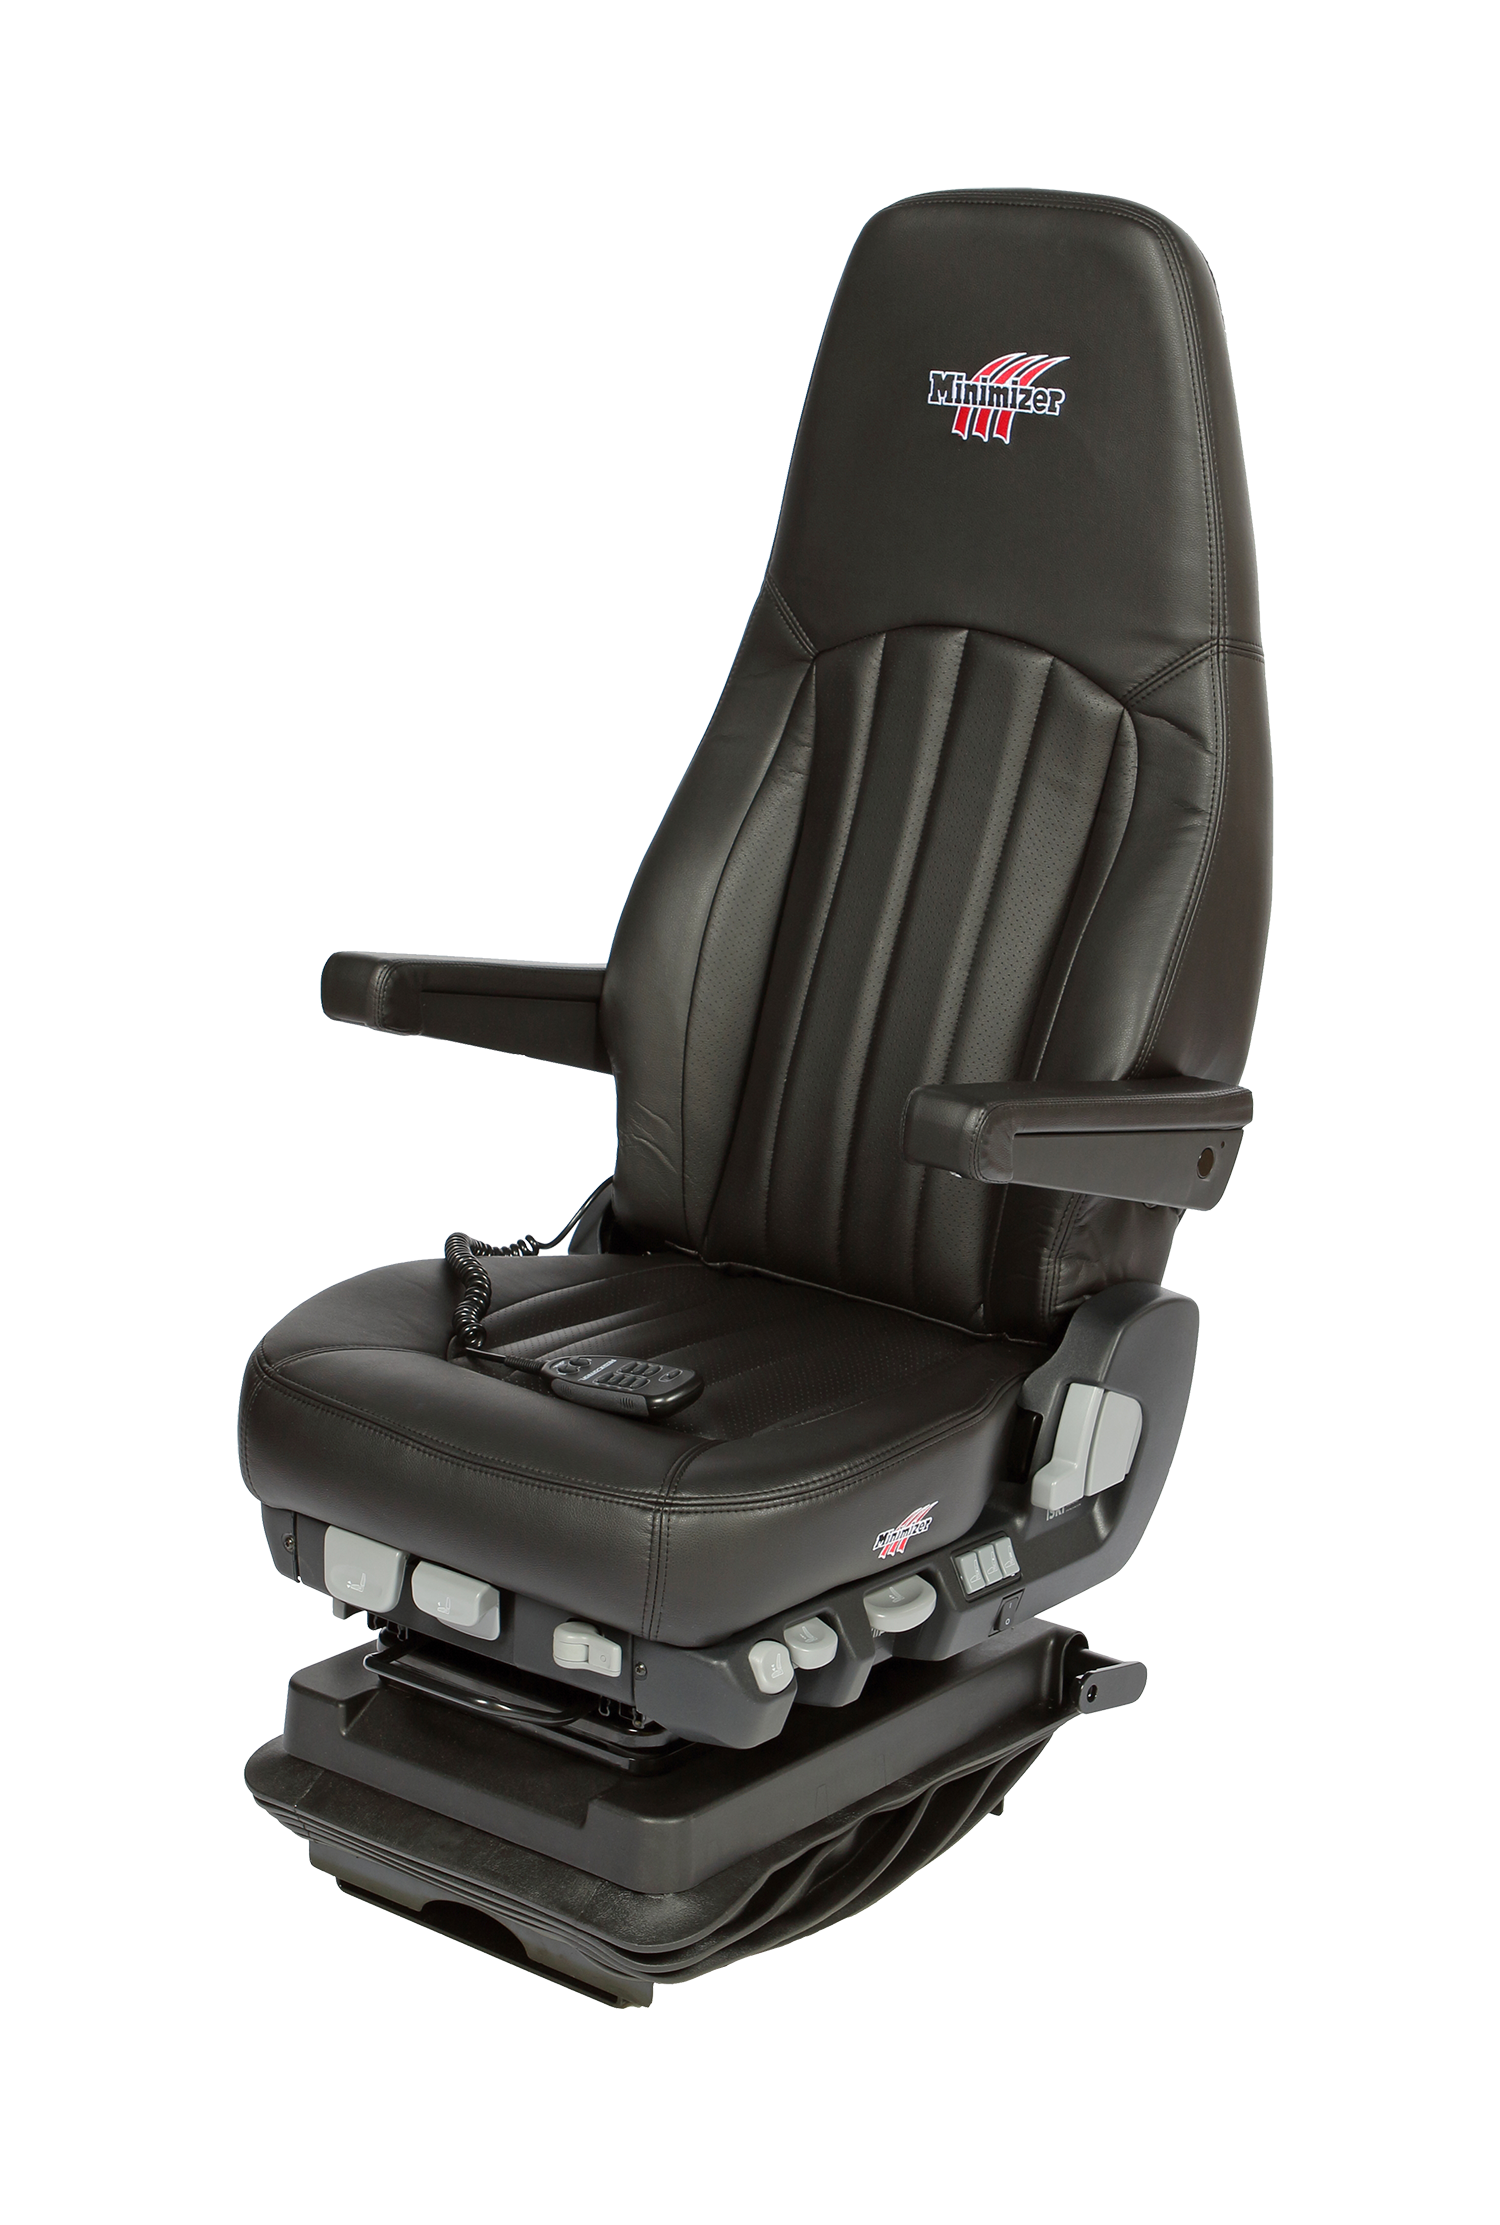 Minimizer Heavy Duty Semi Truck Seats - Ultra Leather Base